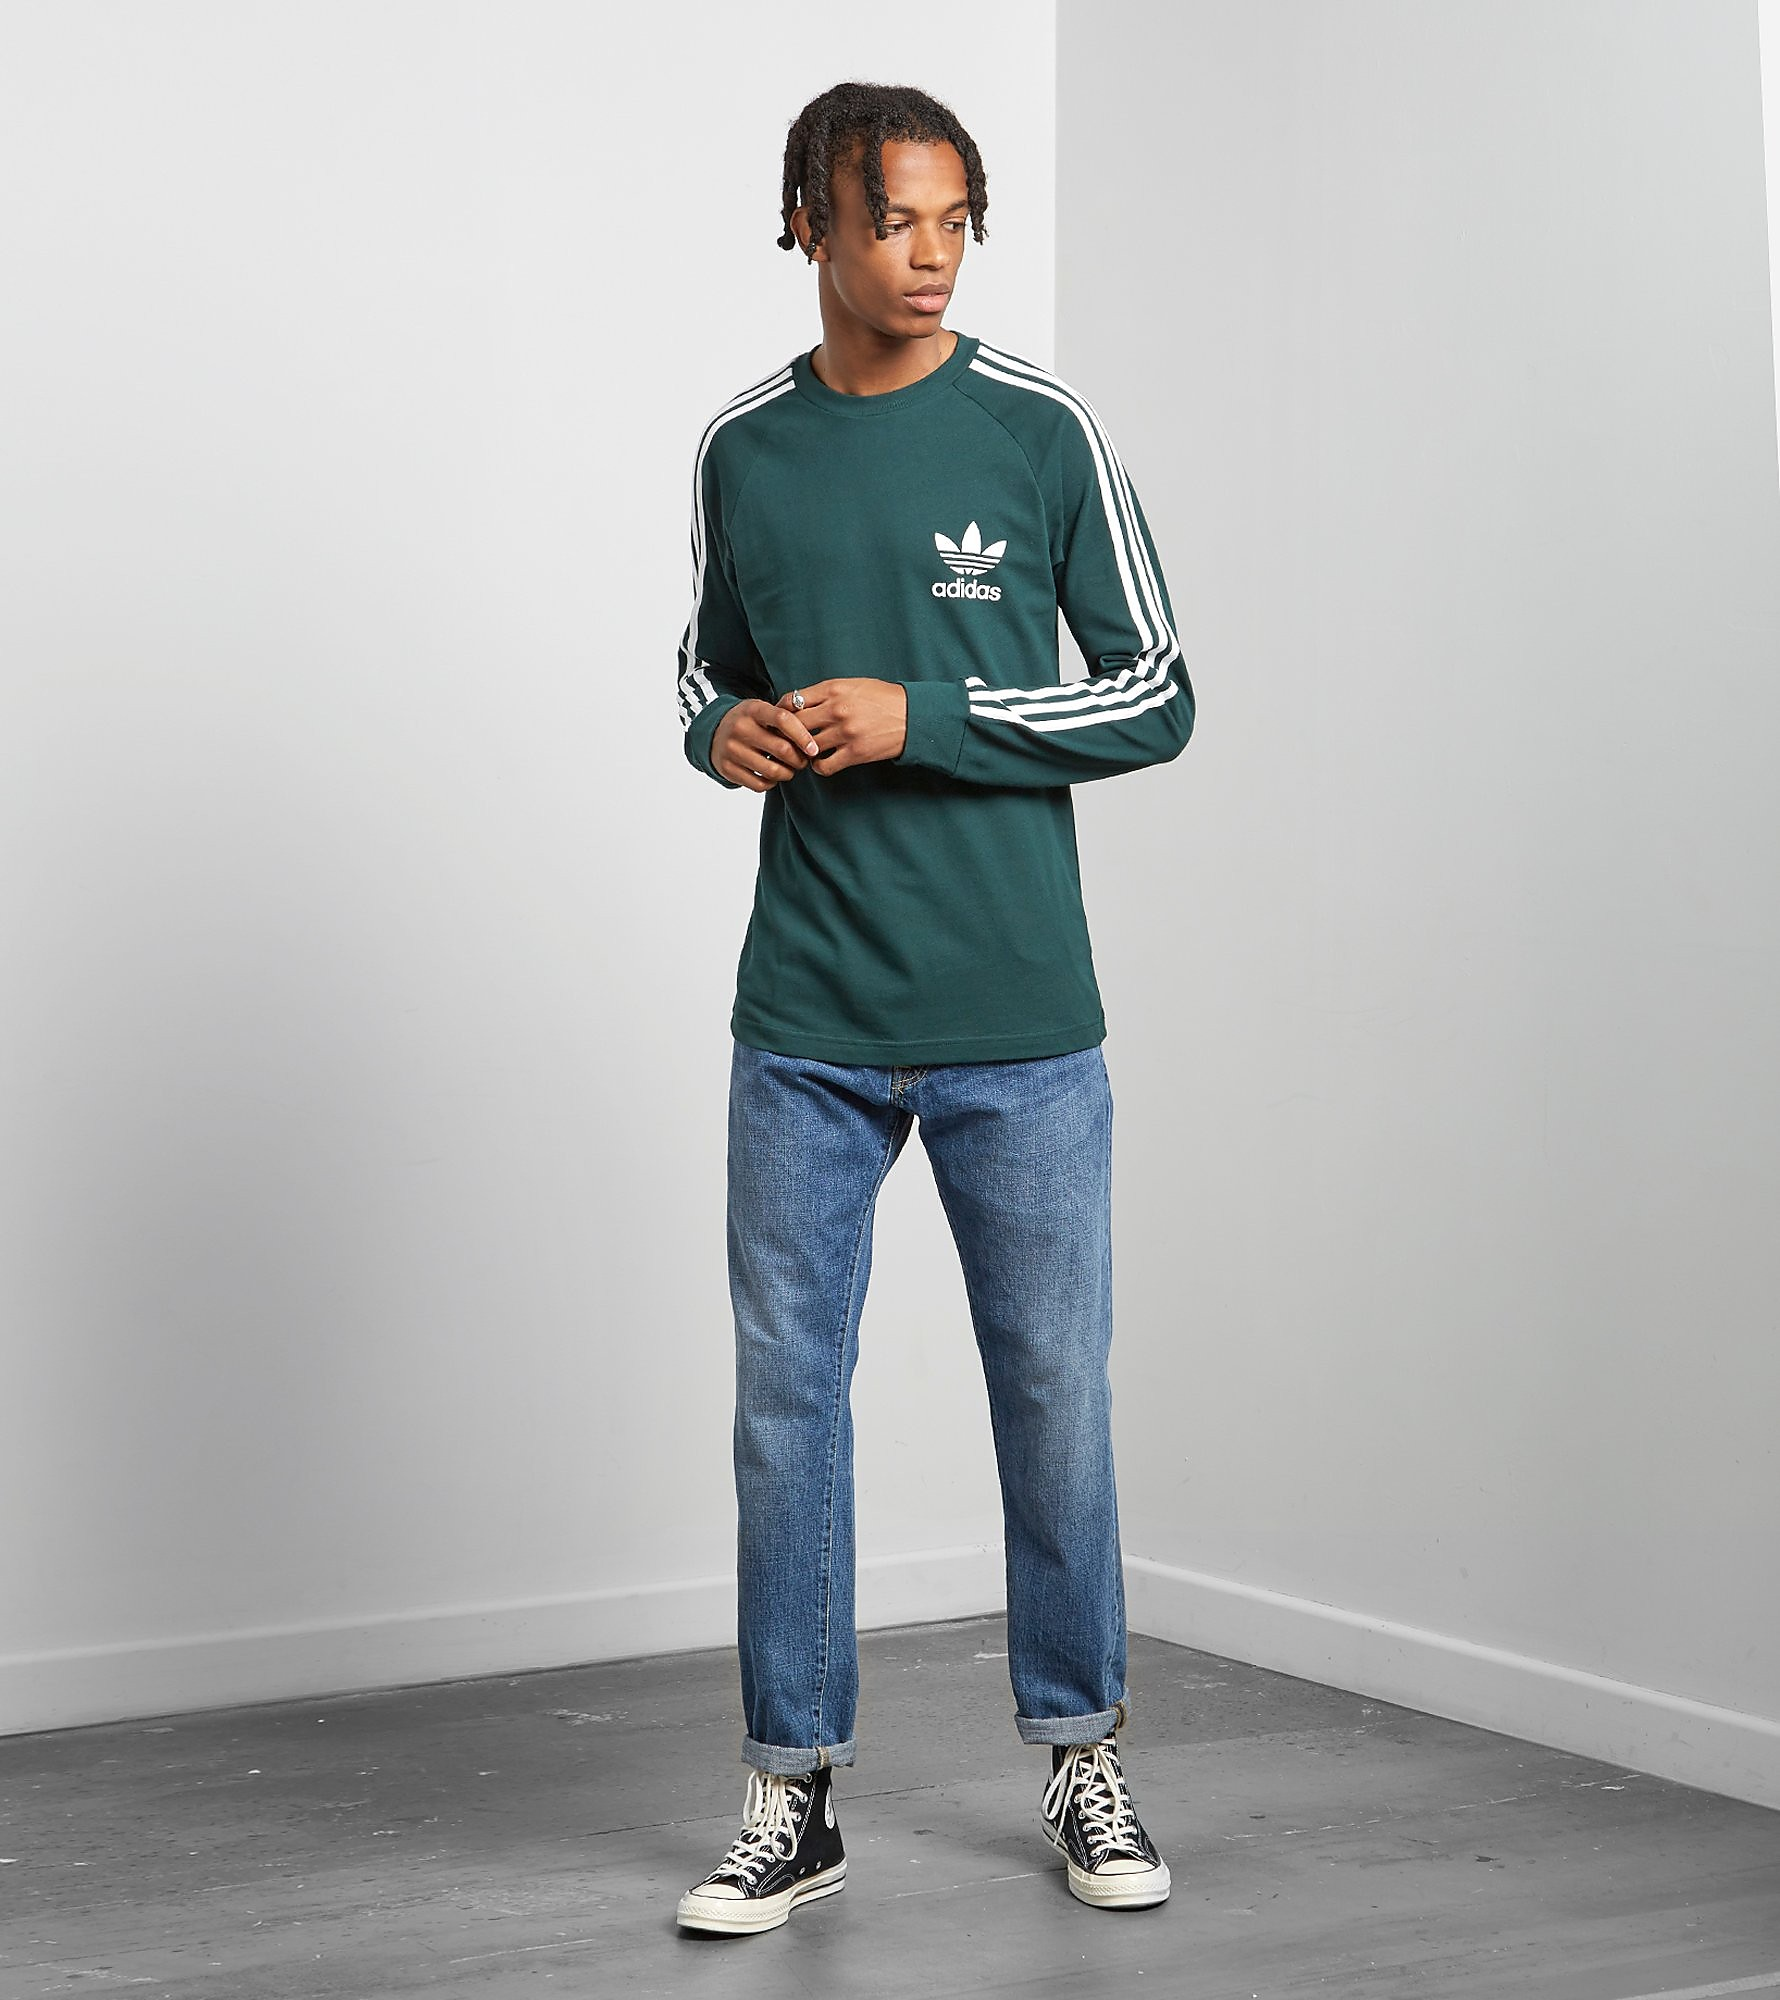 adidas Originals Pique Cali Long Sleeve T-Shirt